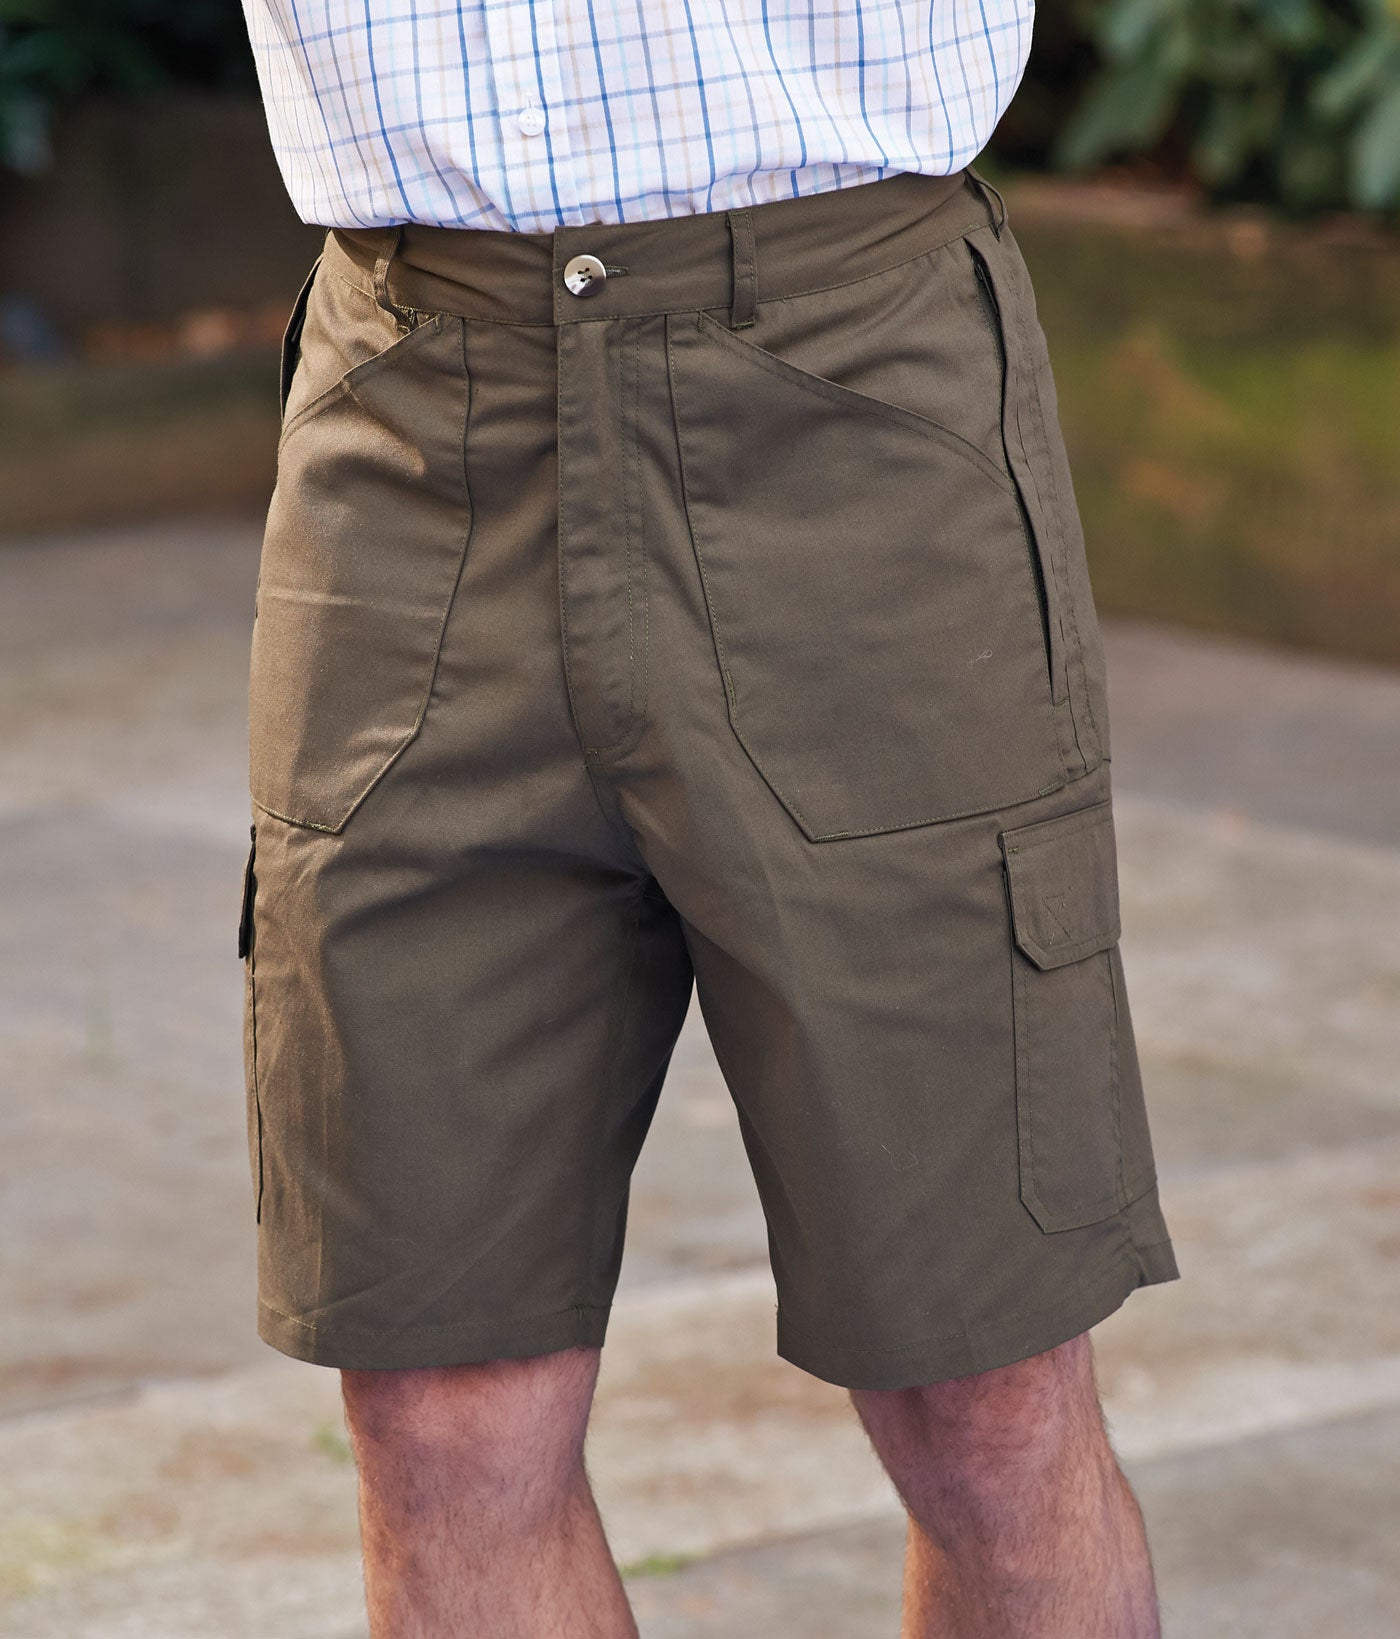 Champion shorts with lots of pockets